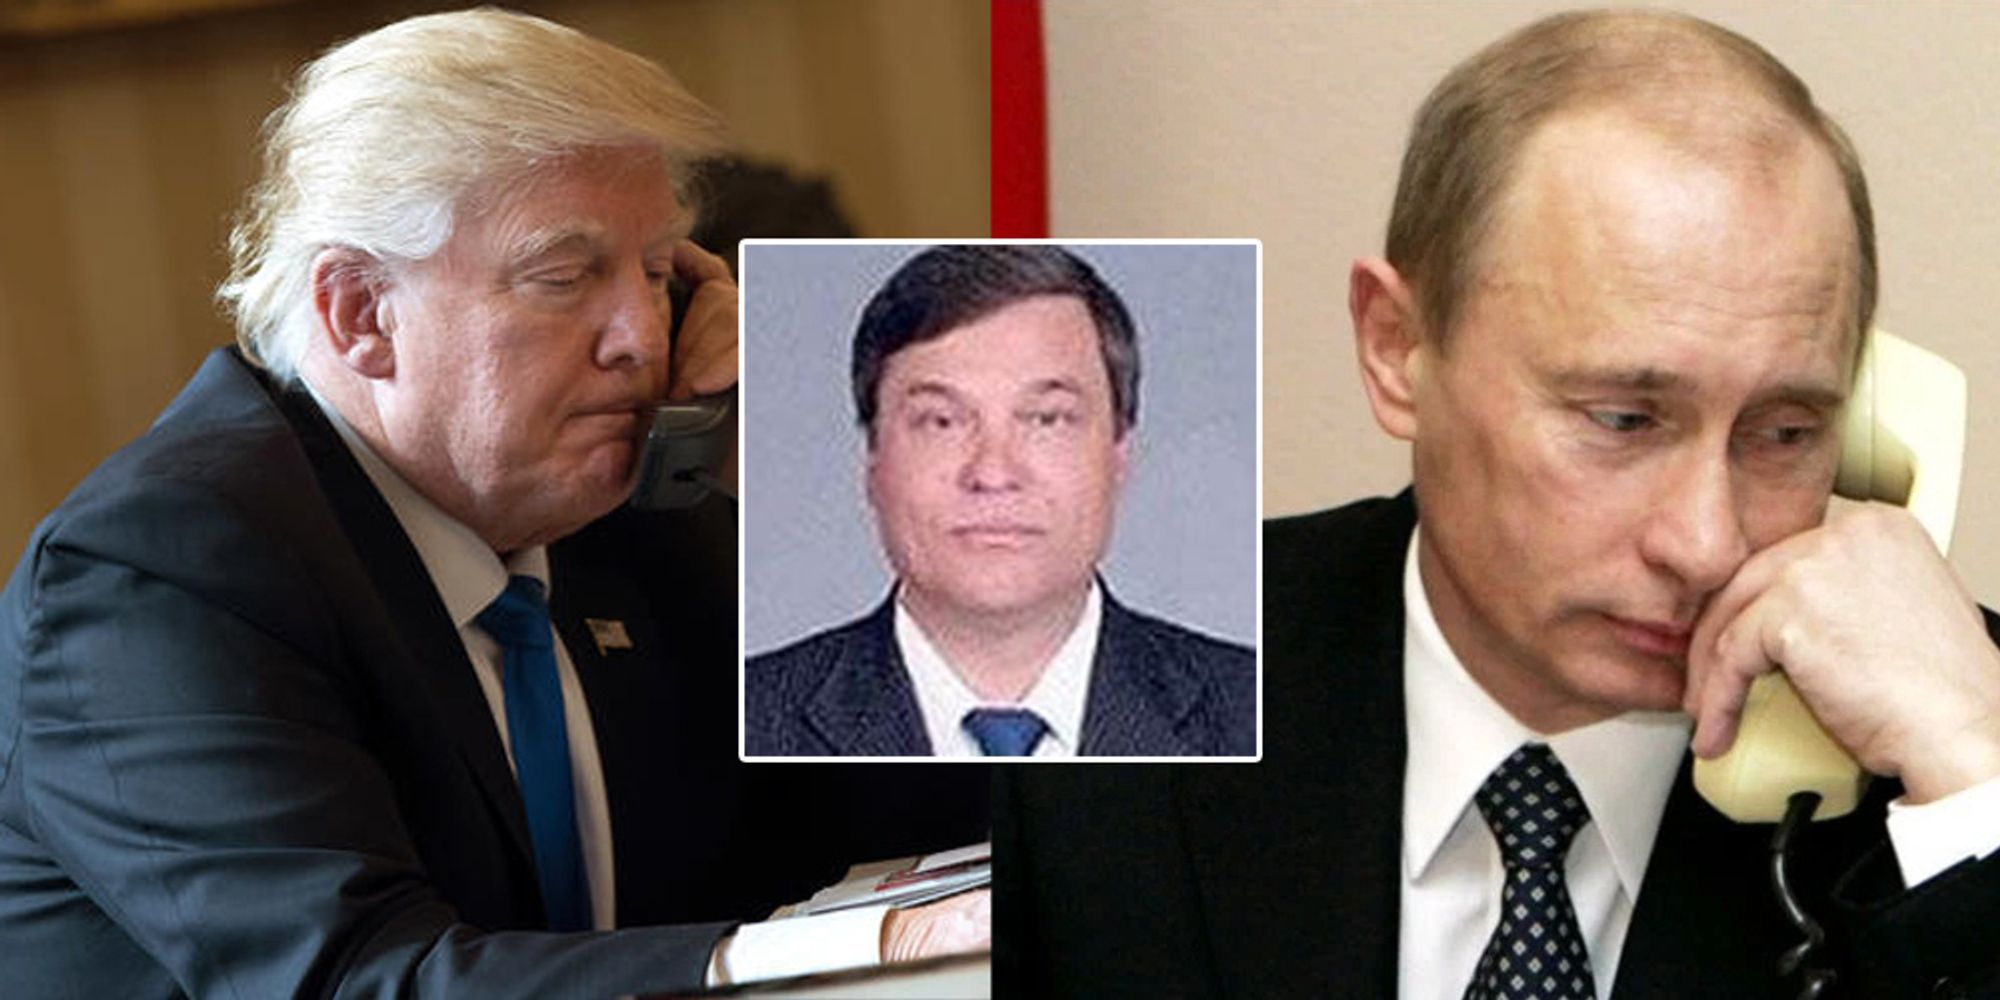 Ex-KGB Chief Thought Dead As Source Of Trump Blackmail Dossier Leak